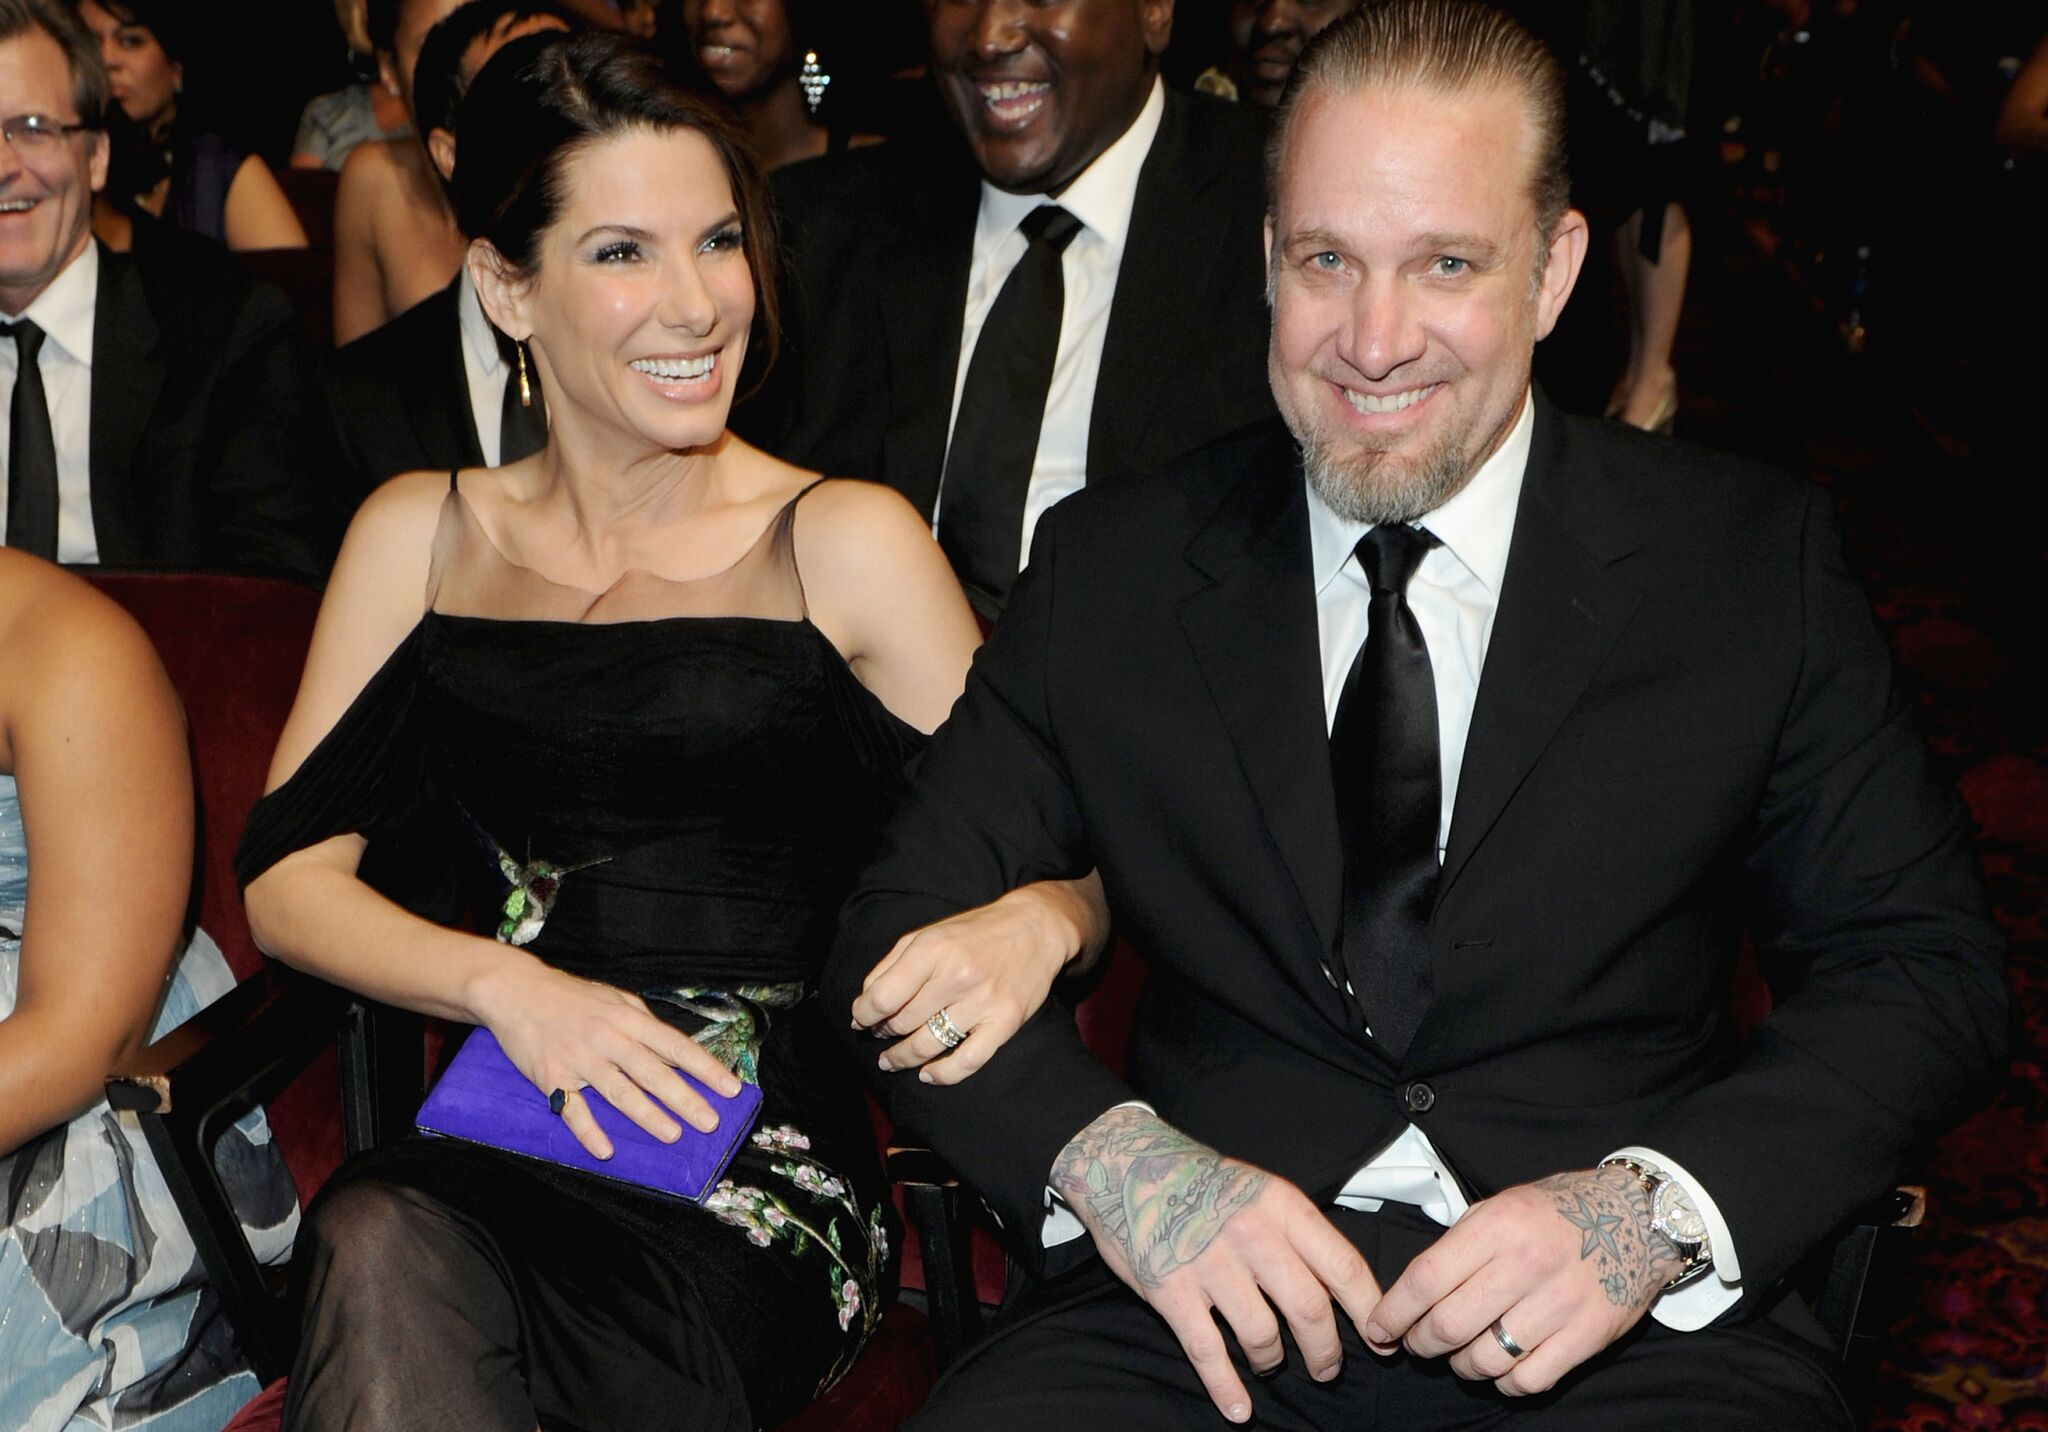 Sandra Bullock and husband Jesse James at the 41st NAACP Image awards | Getty Images